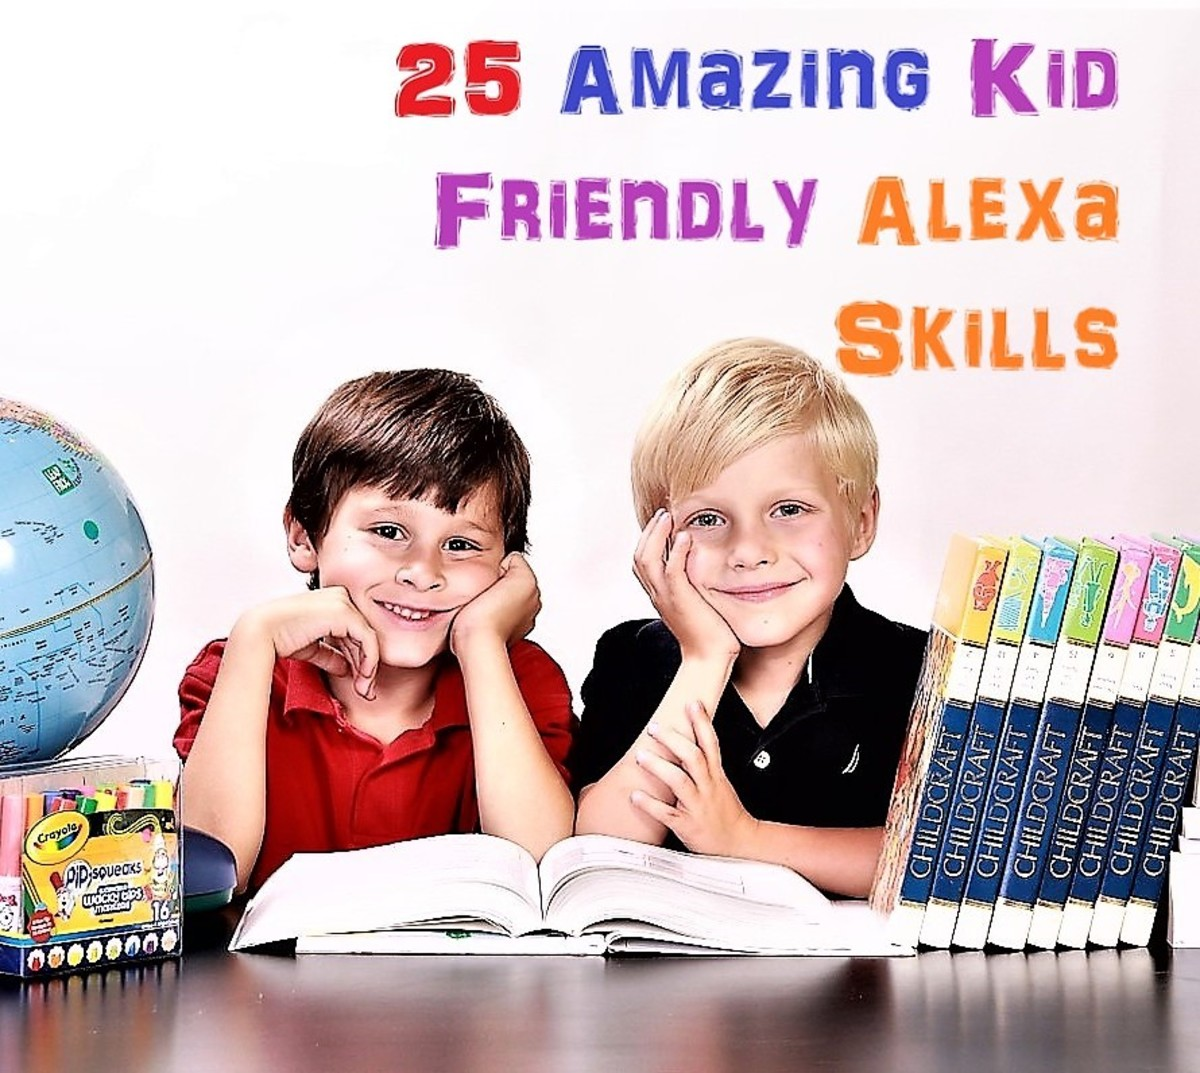 25 Amazing Kid Friendly Alexa Skills